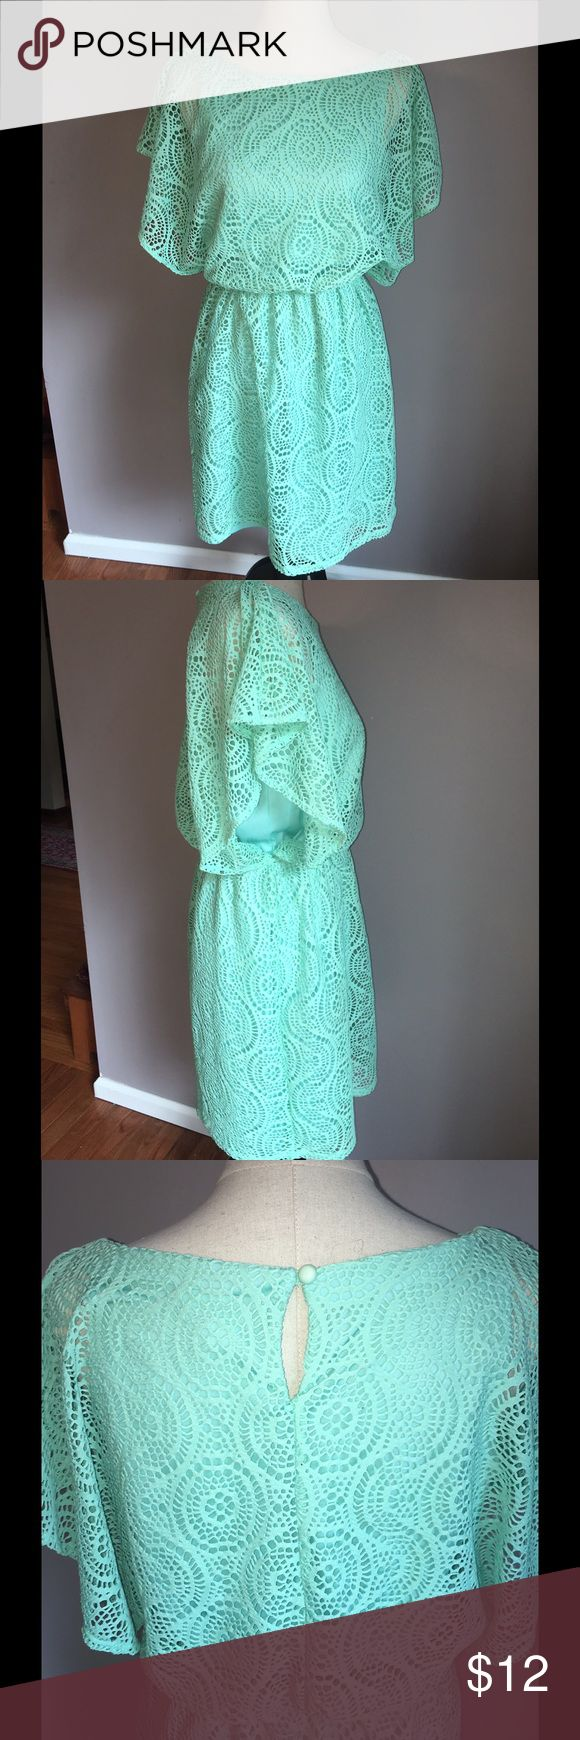 Emma & Michele mint green dress Size 10 Adorable casual dress with flirty sleeves. Pearl button closure at neck. Elastic waist makes this dress very comfortable and can be accessorized with a belt to complete the look Emma & Michele Dresses